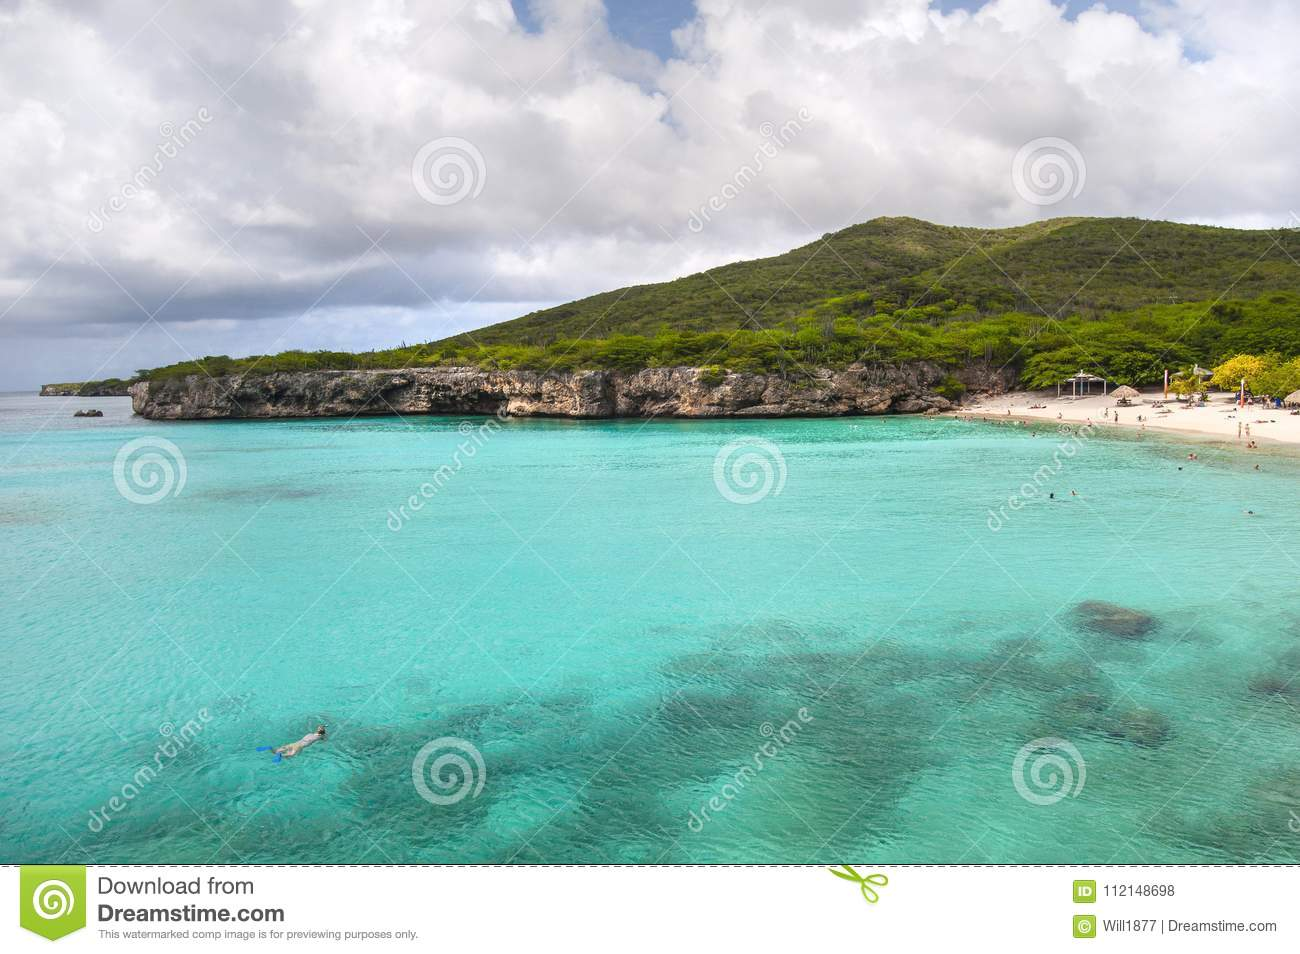 Turquoise Caribbean Water And Secluded Beach Stock Photo - Image of